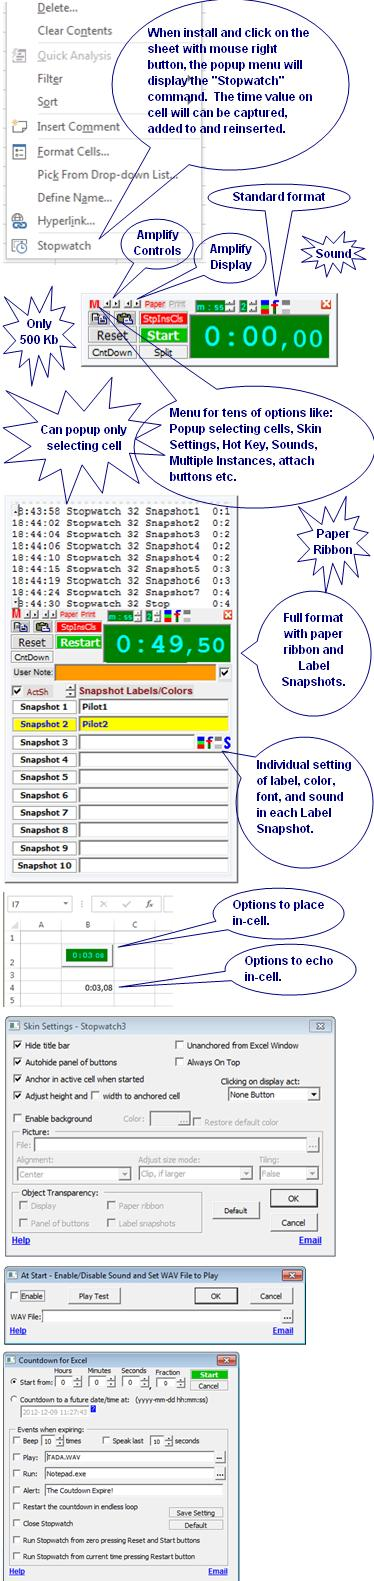 Popup Stopwatch for Microsoft Excel